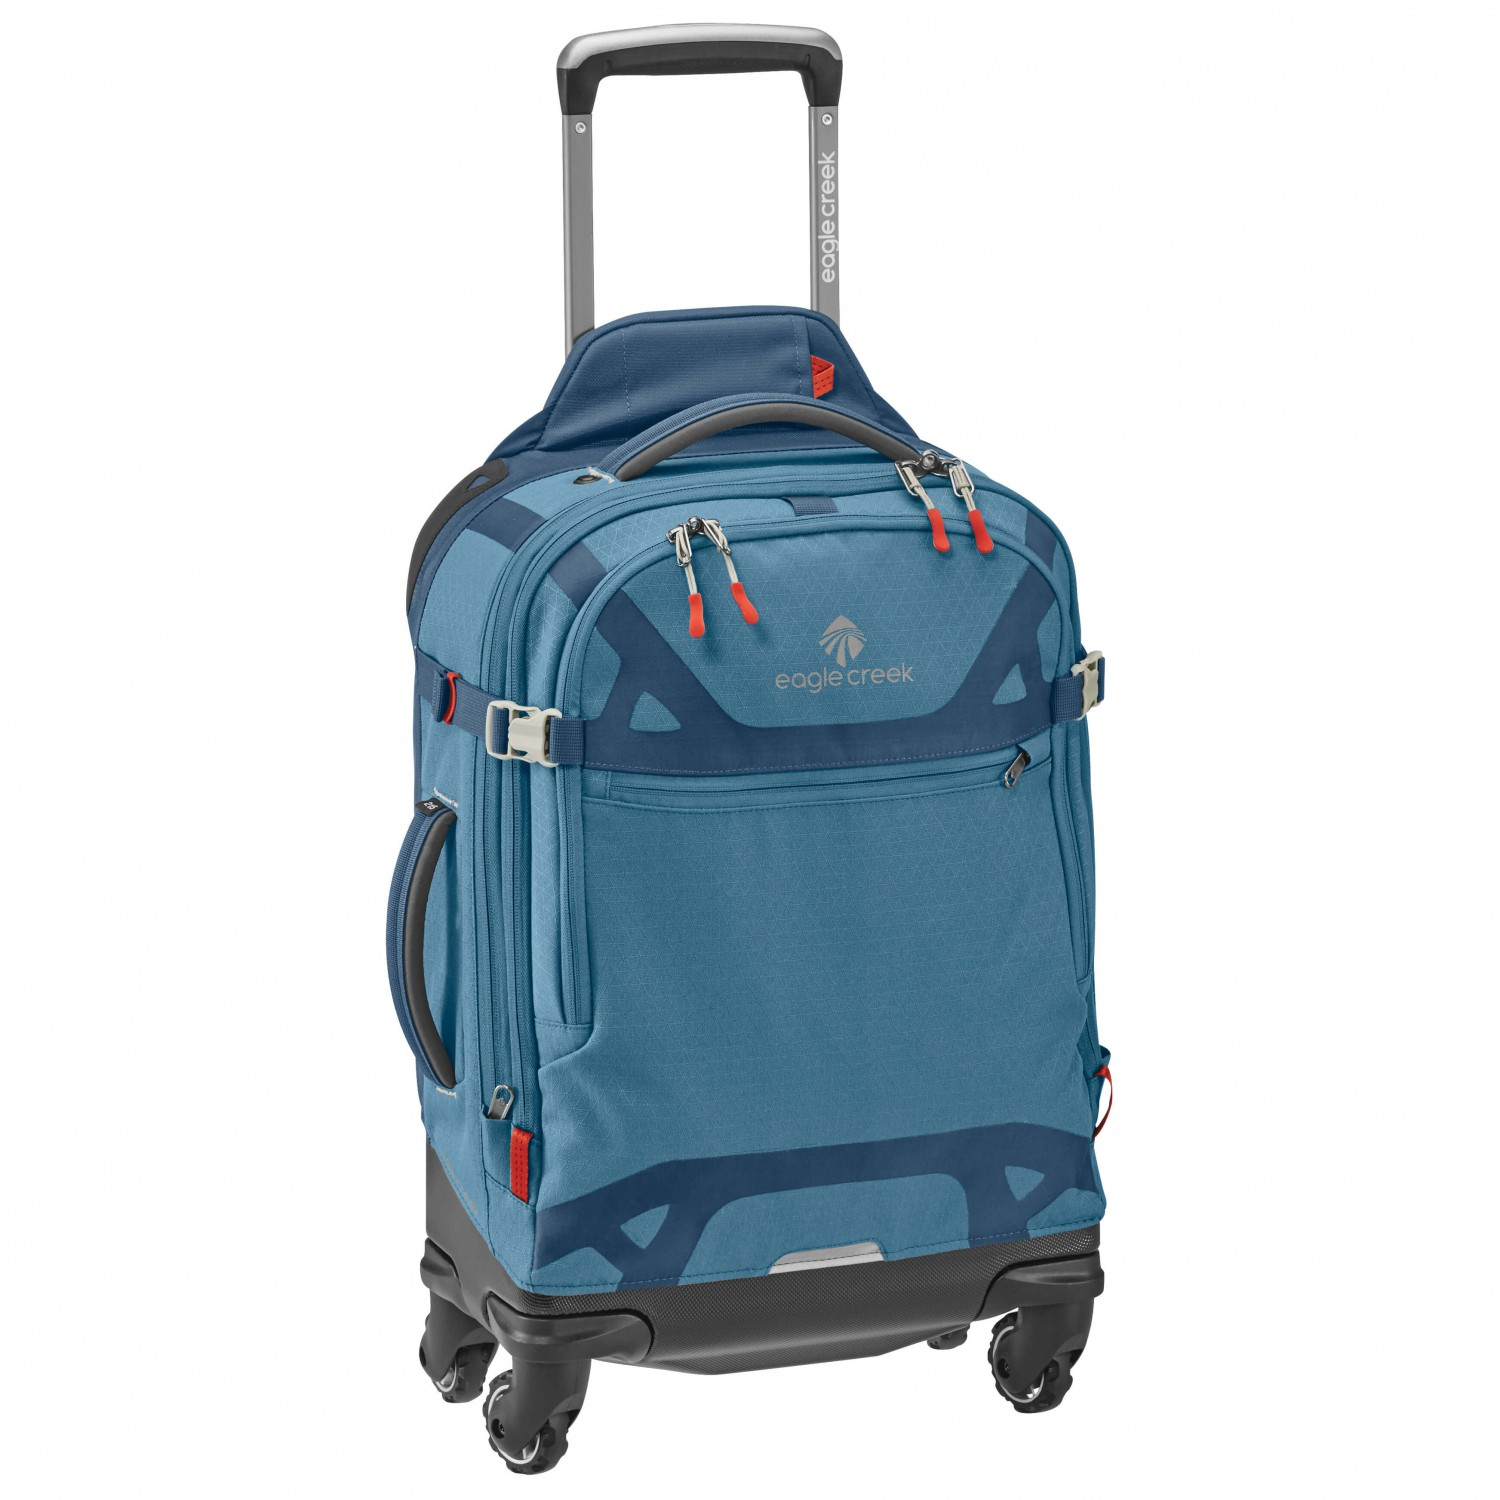 Recommended Luggage Size For International Travel